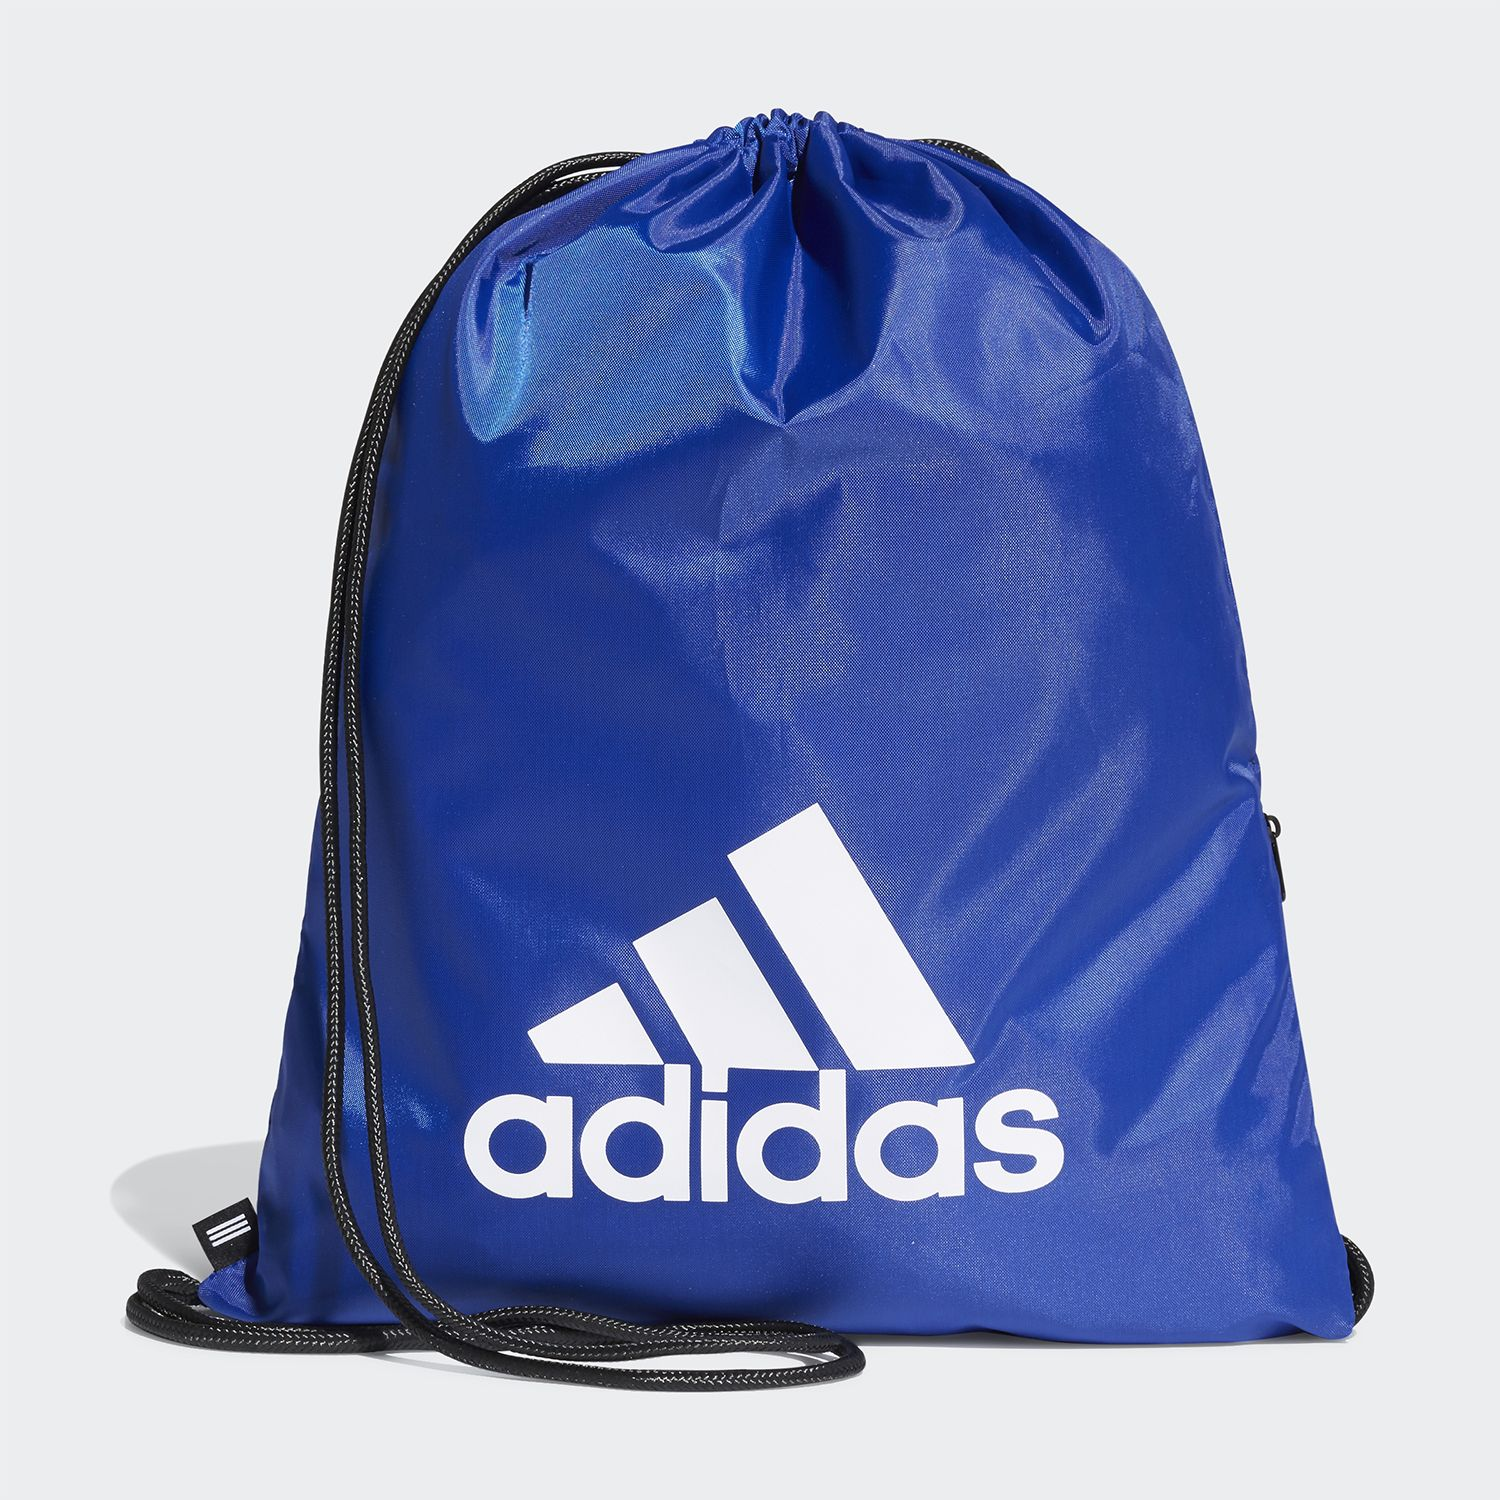 Adidas TIRO GS Azul Mochilas Multipropósitos